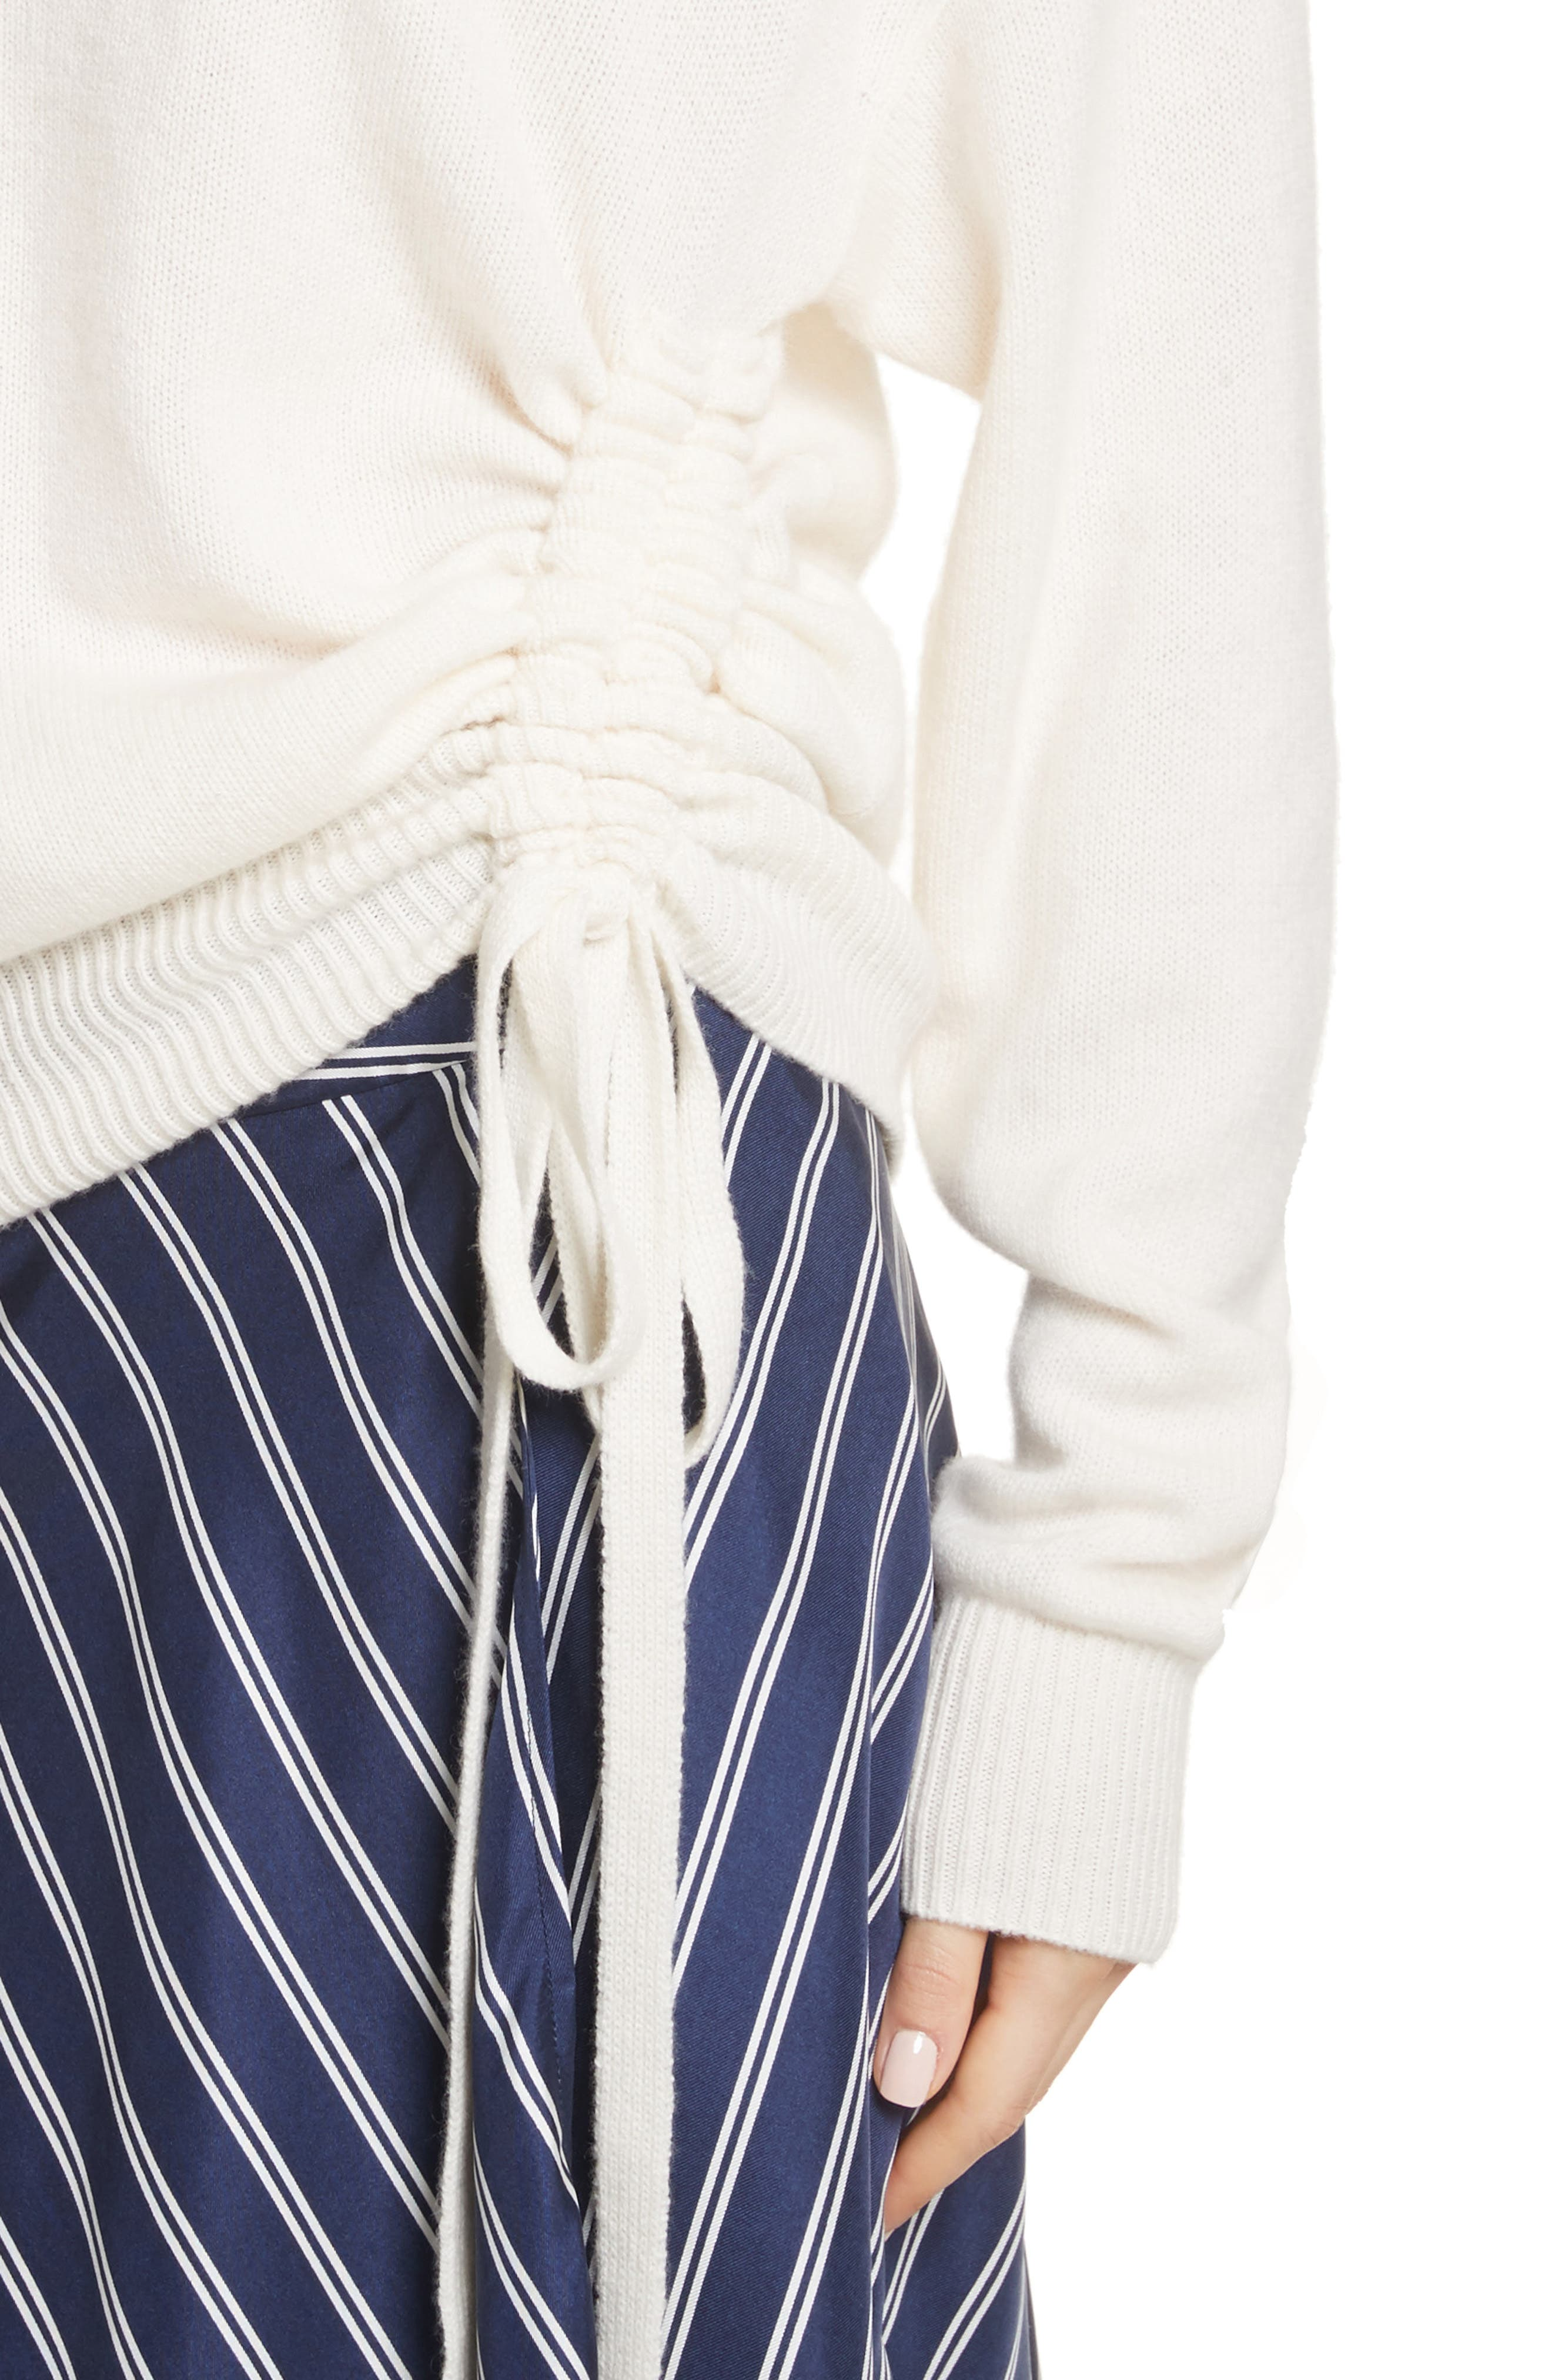 Iphis Wool & Cashmere Sweater,                             Alternate thumbnail 4, color,                             Porcelain